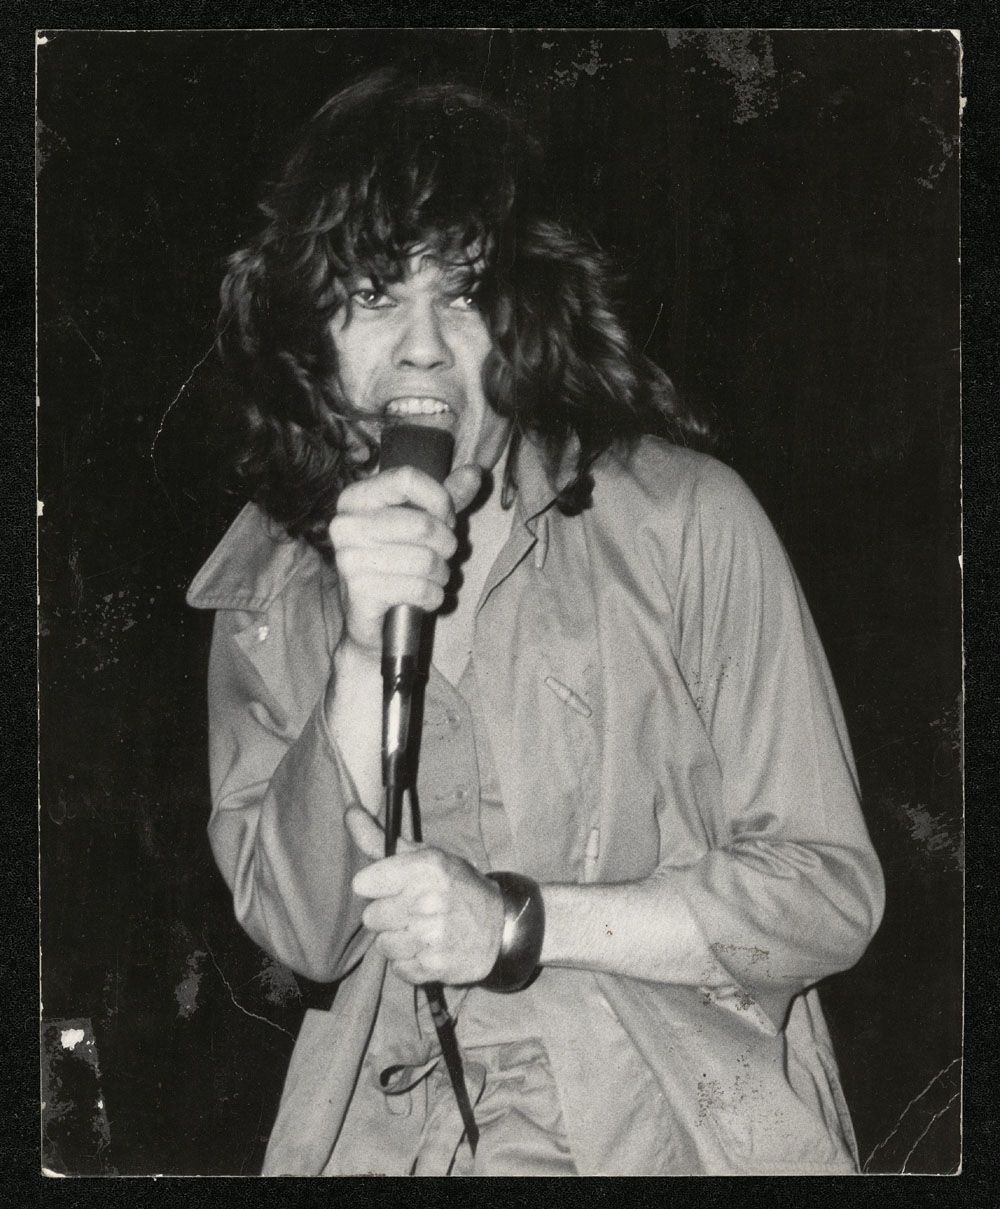 NEW YORK DOLLS photo #1